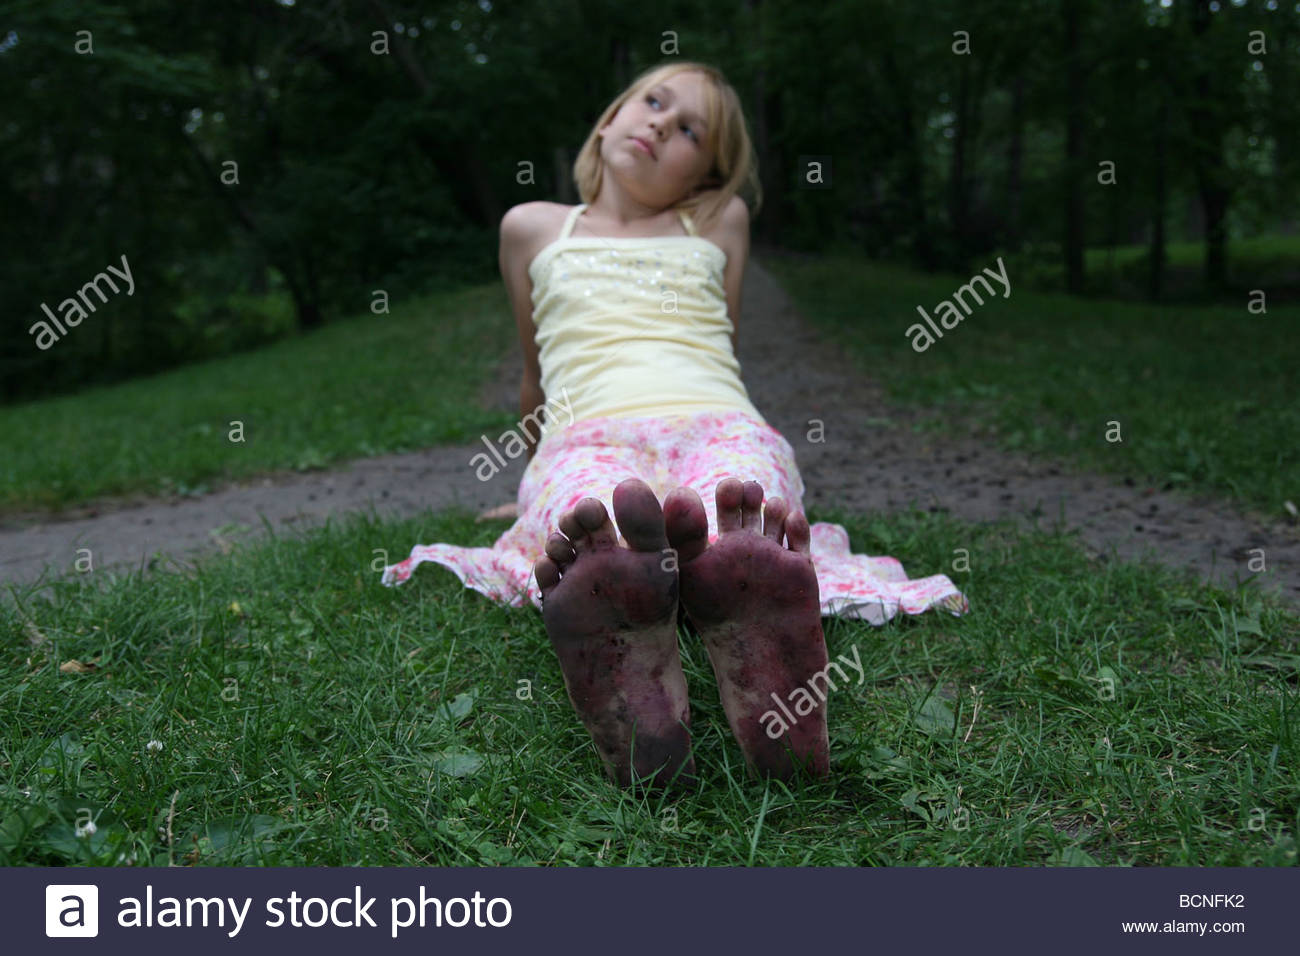 a-girl-sitting-in-the-grass-with-legs-st